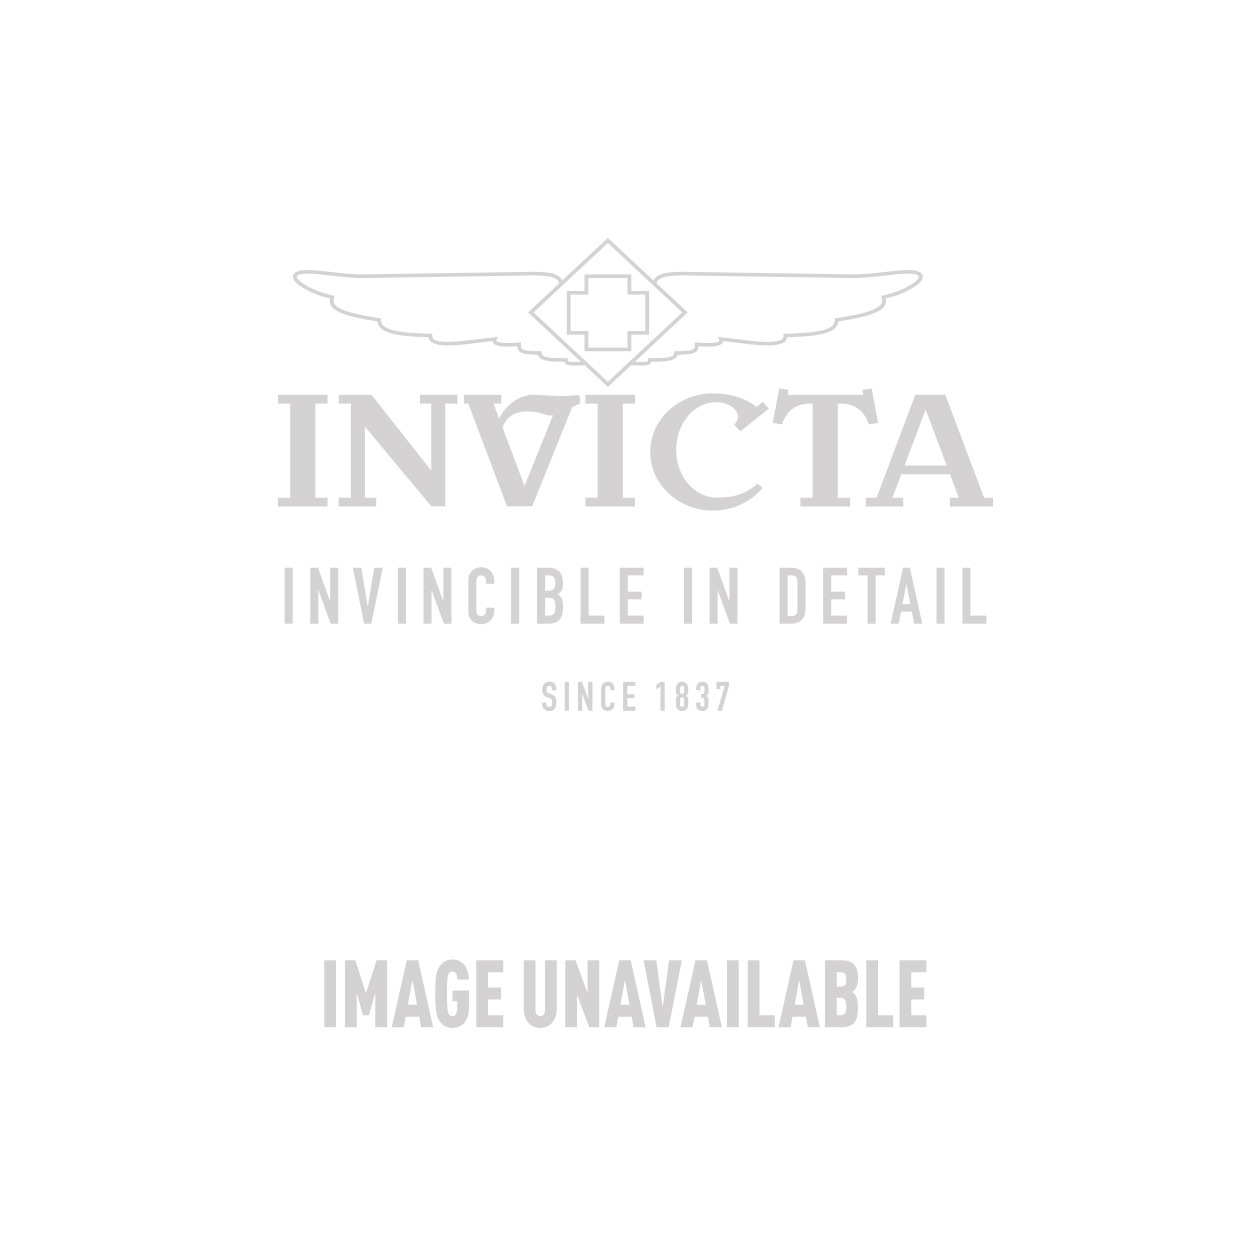 Invicta Sea Hunter  Quartz Watch - Stainless Steel case with Red tone Polyurethane band - Model 1984